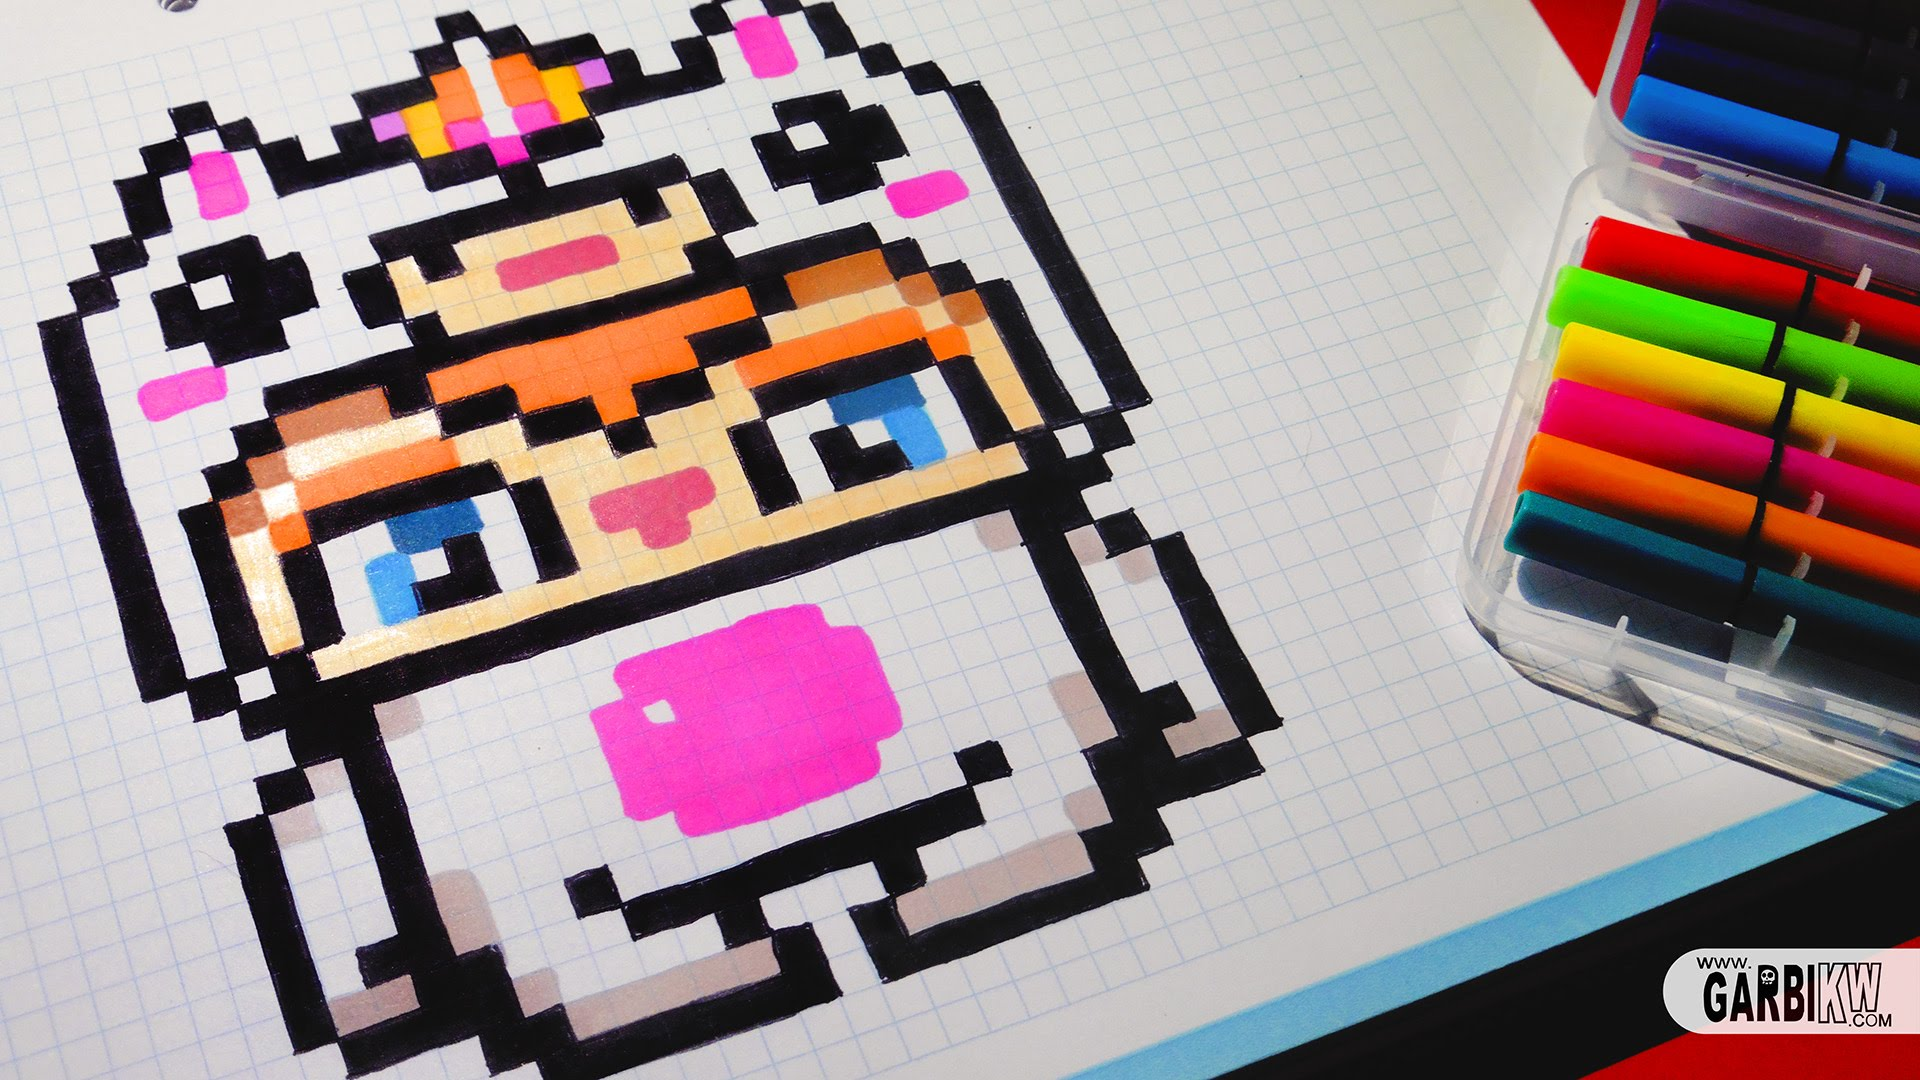 Drawn pixel art garbi kw  Pixel Kawaii Kawaii Unicorn